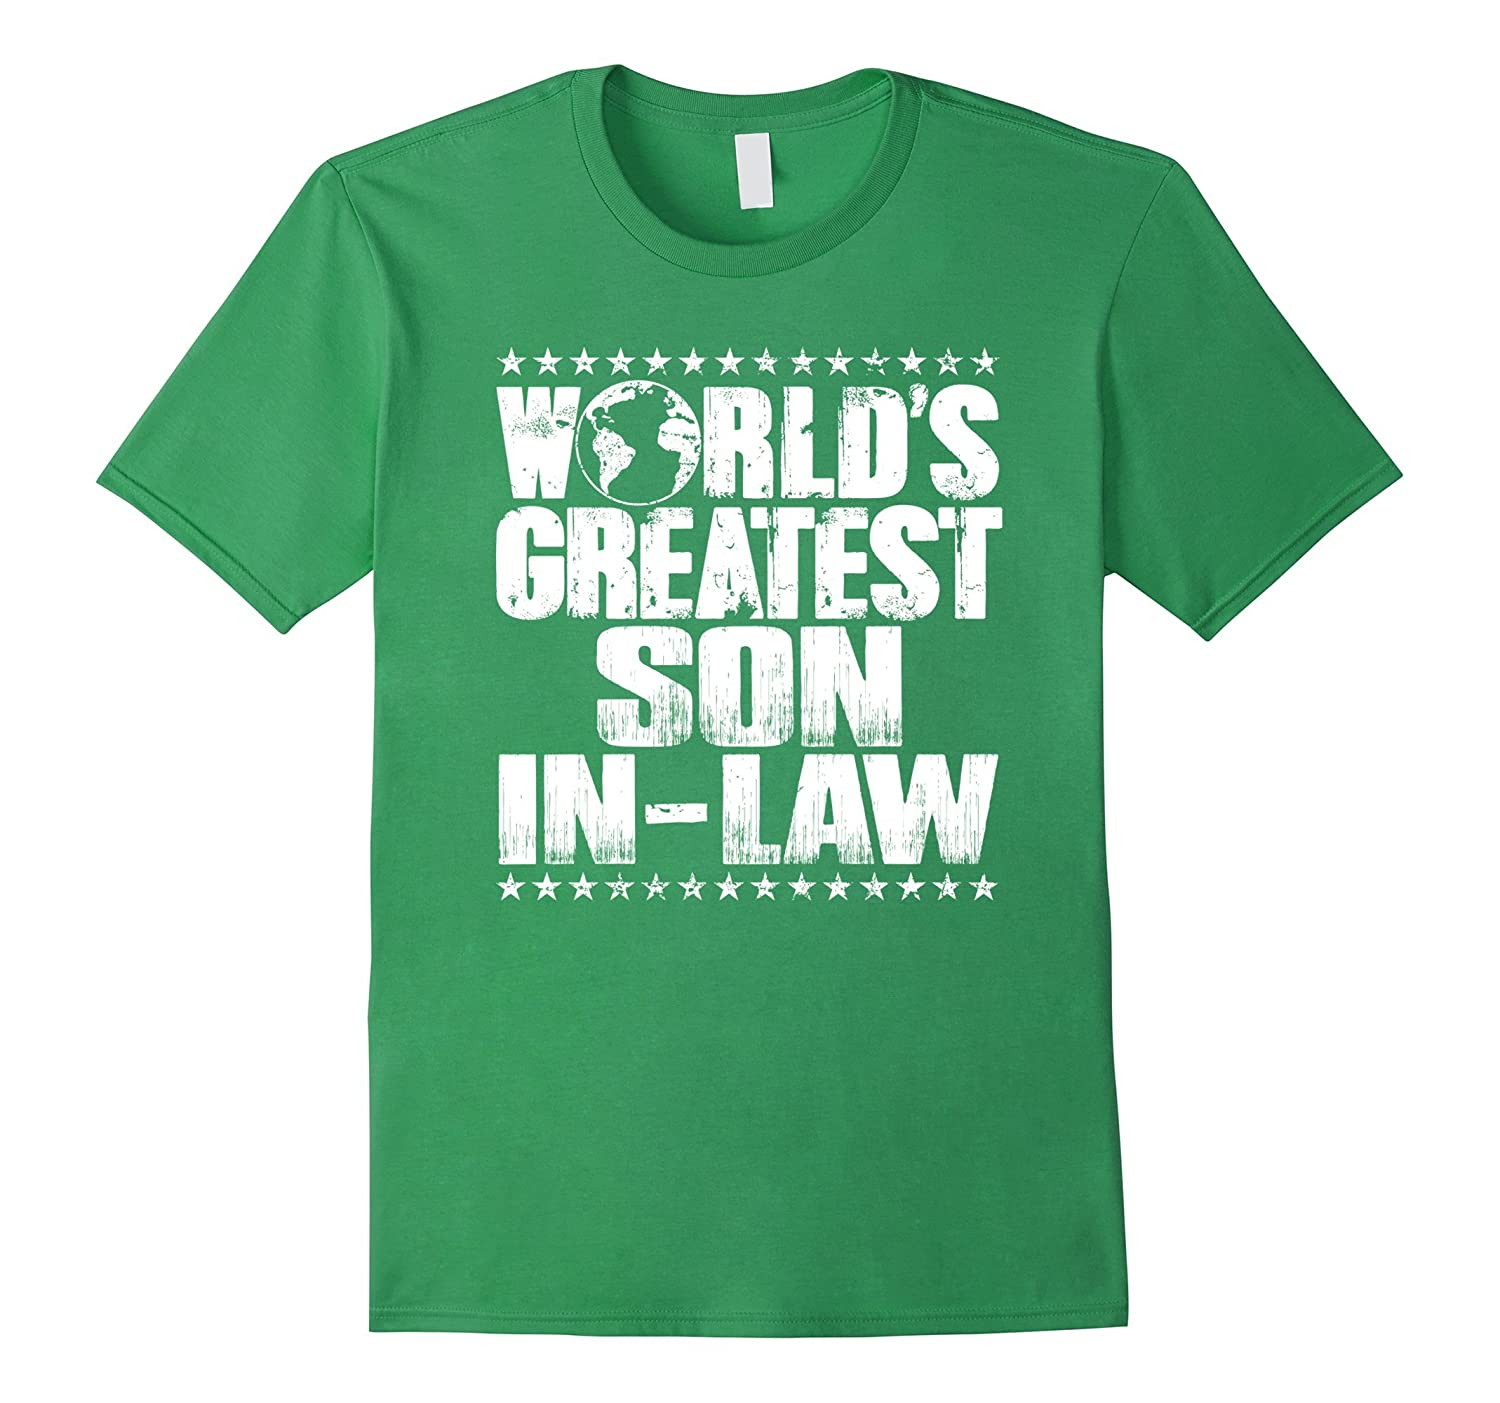 World's Greatest Son In Law T Shirt – Best Ever Award Tee